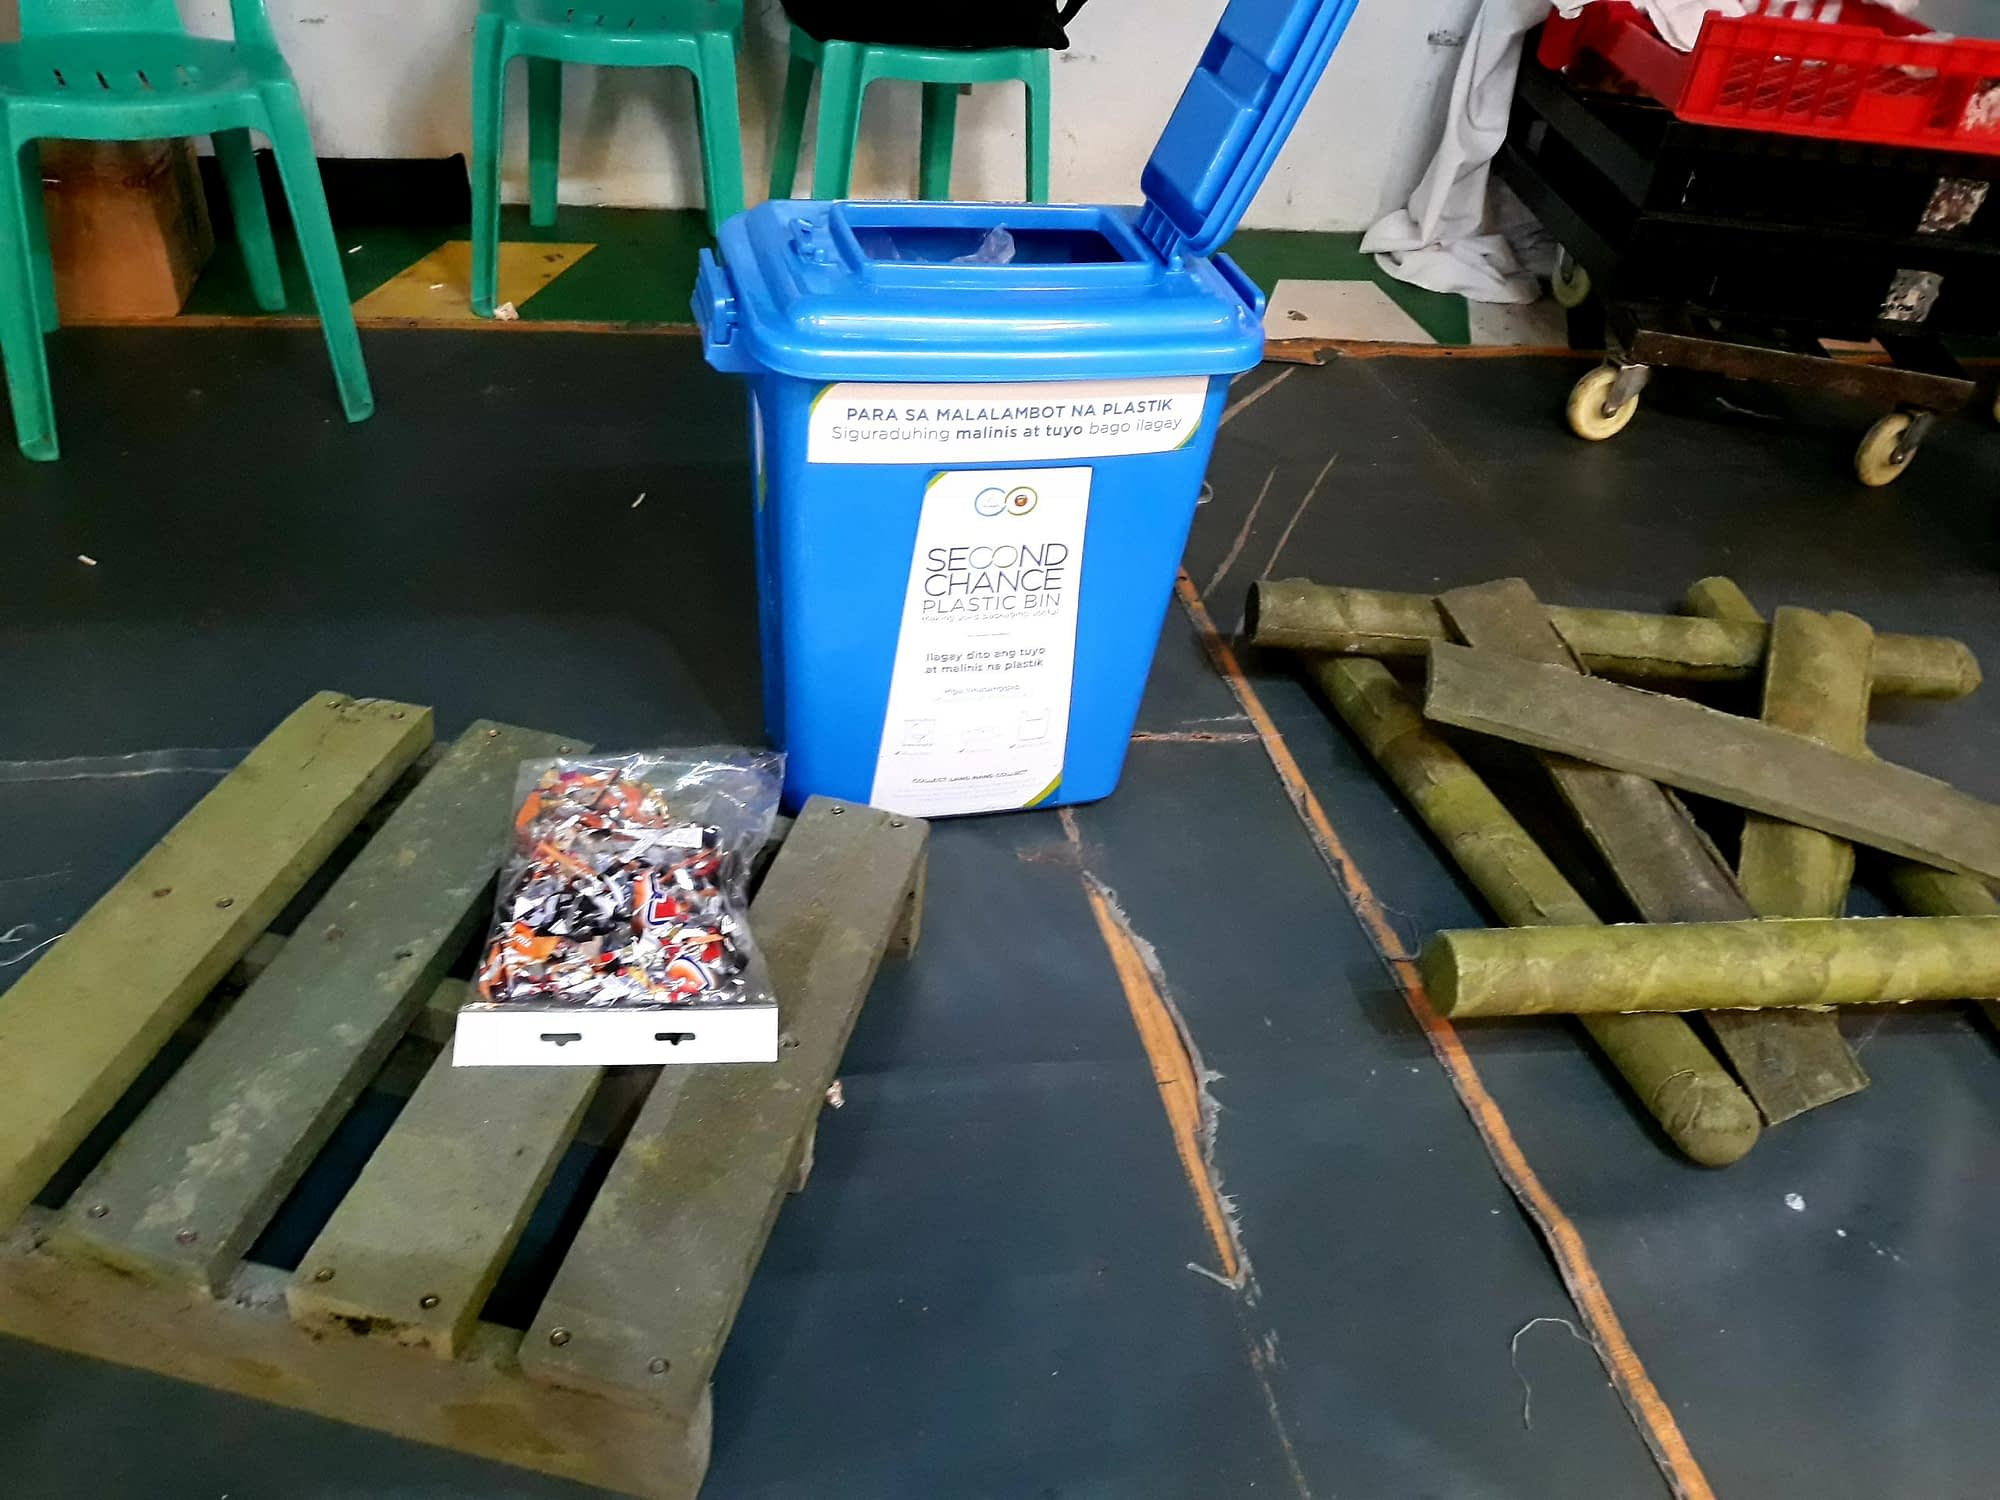 , Why was there single-use plastic at this zero waste event in the Philippines?, The Circular Economy